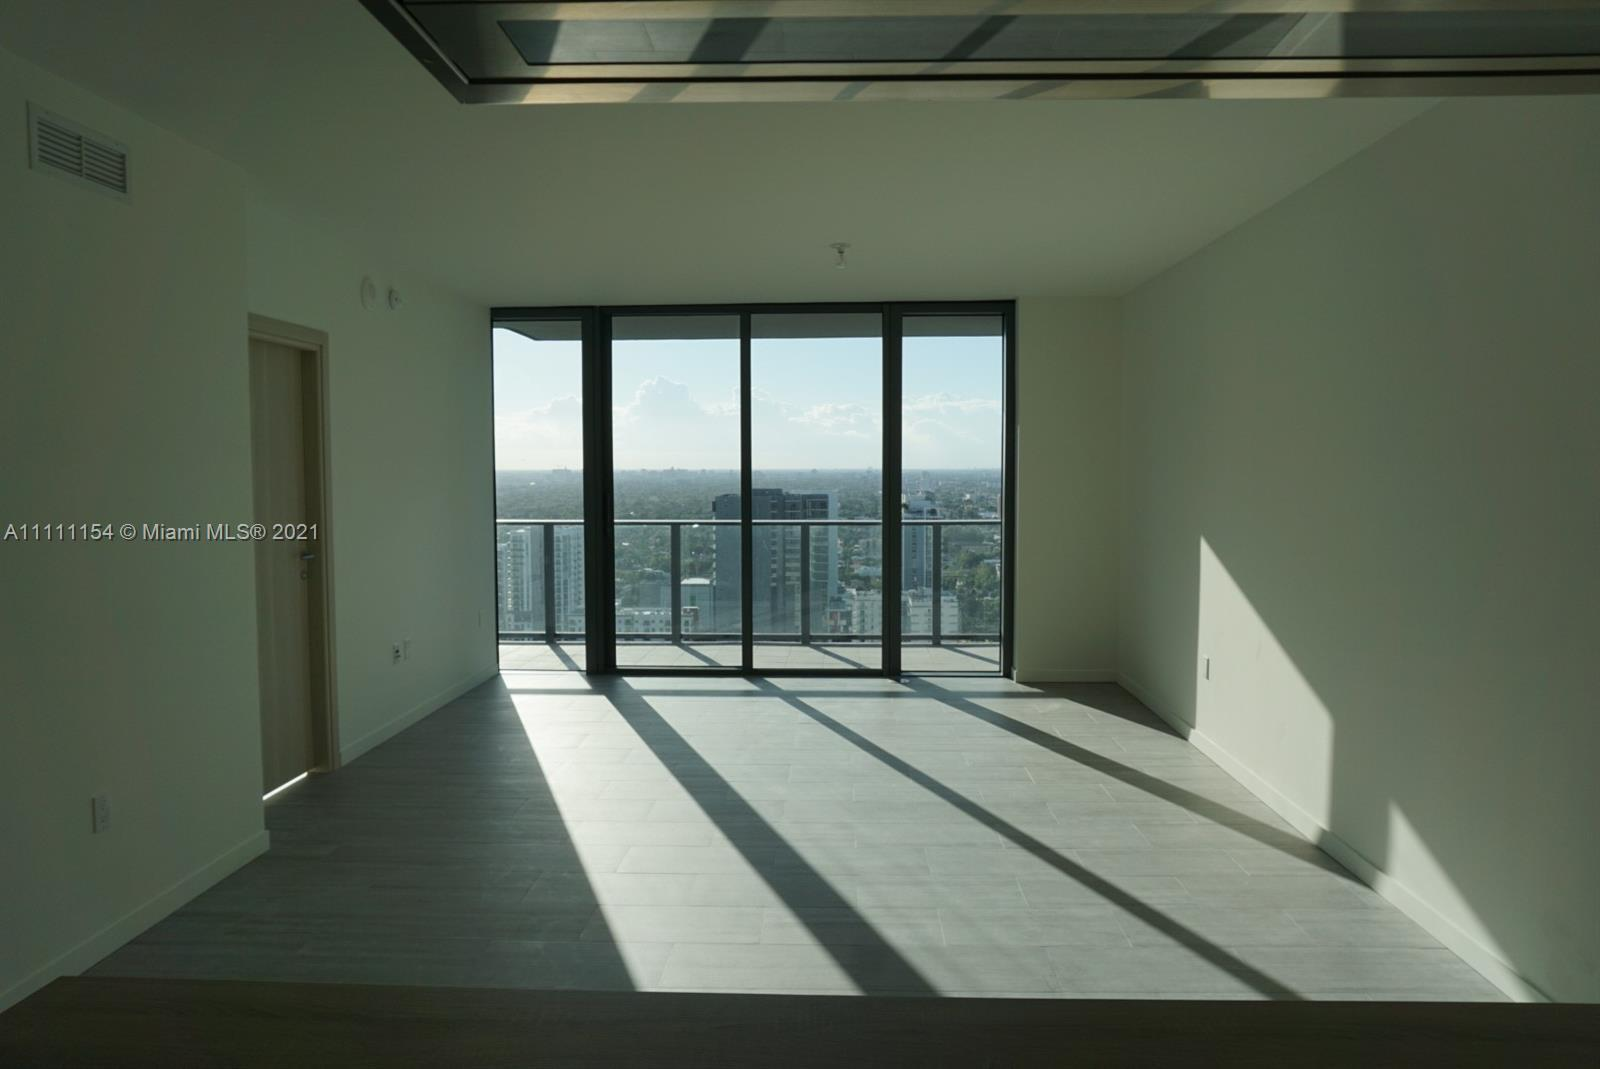 Opportunity to buy a never lived and spacious 1bed 1.5 bath in Brickell's most wanted luxurious buil